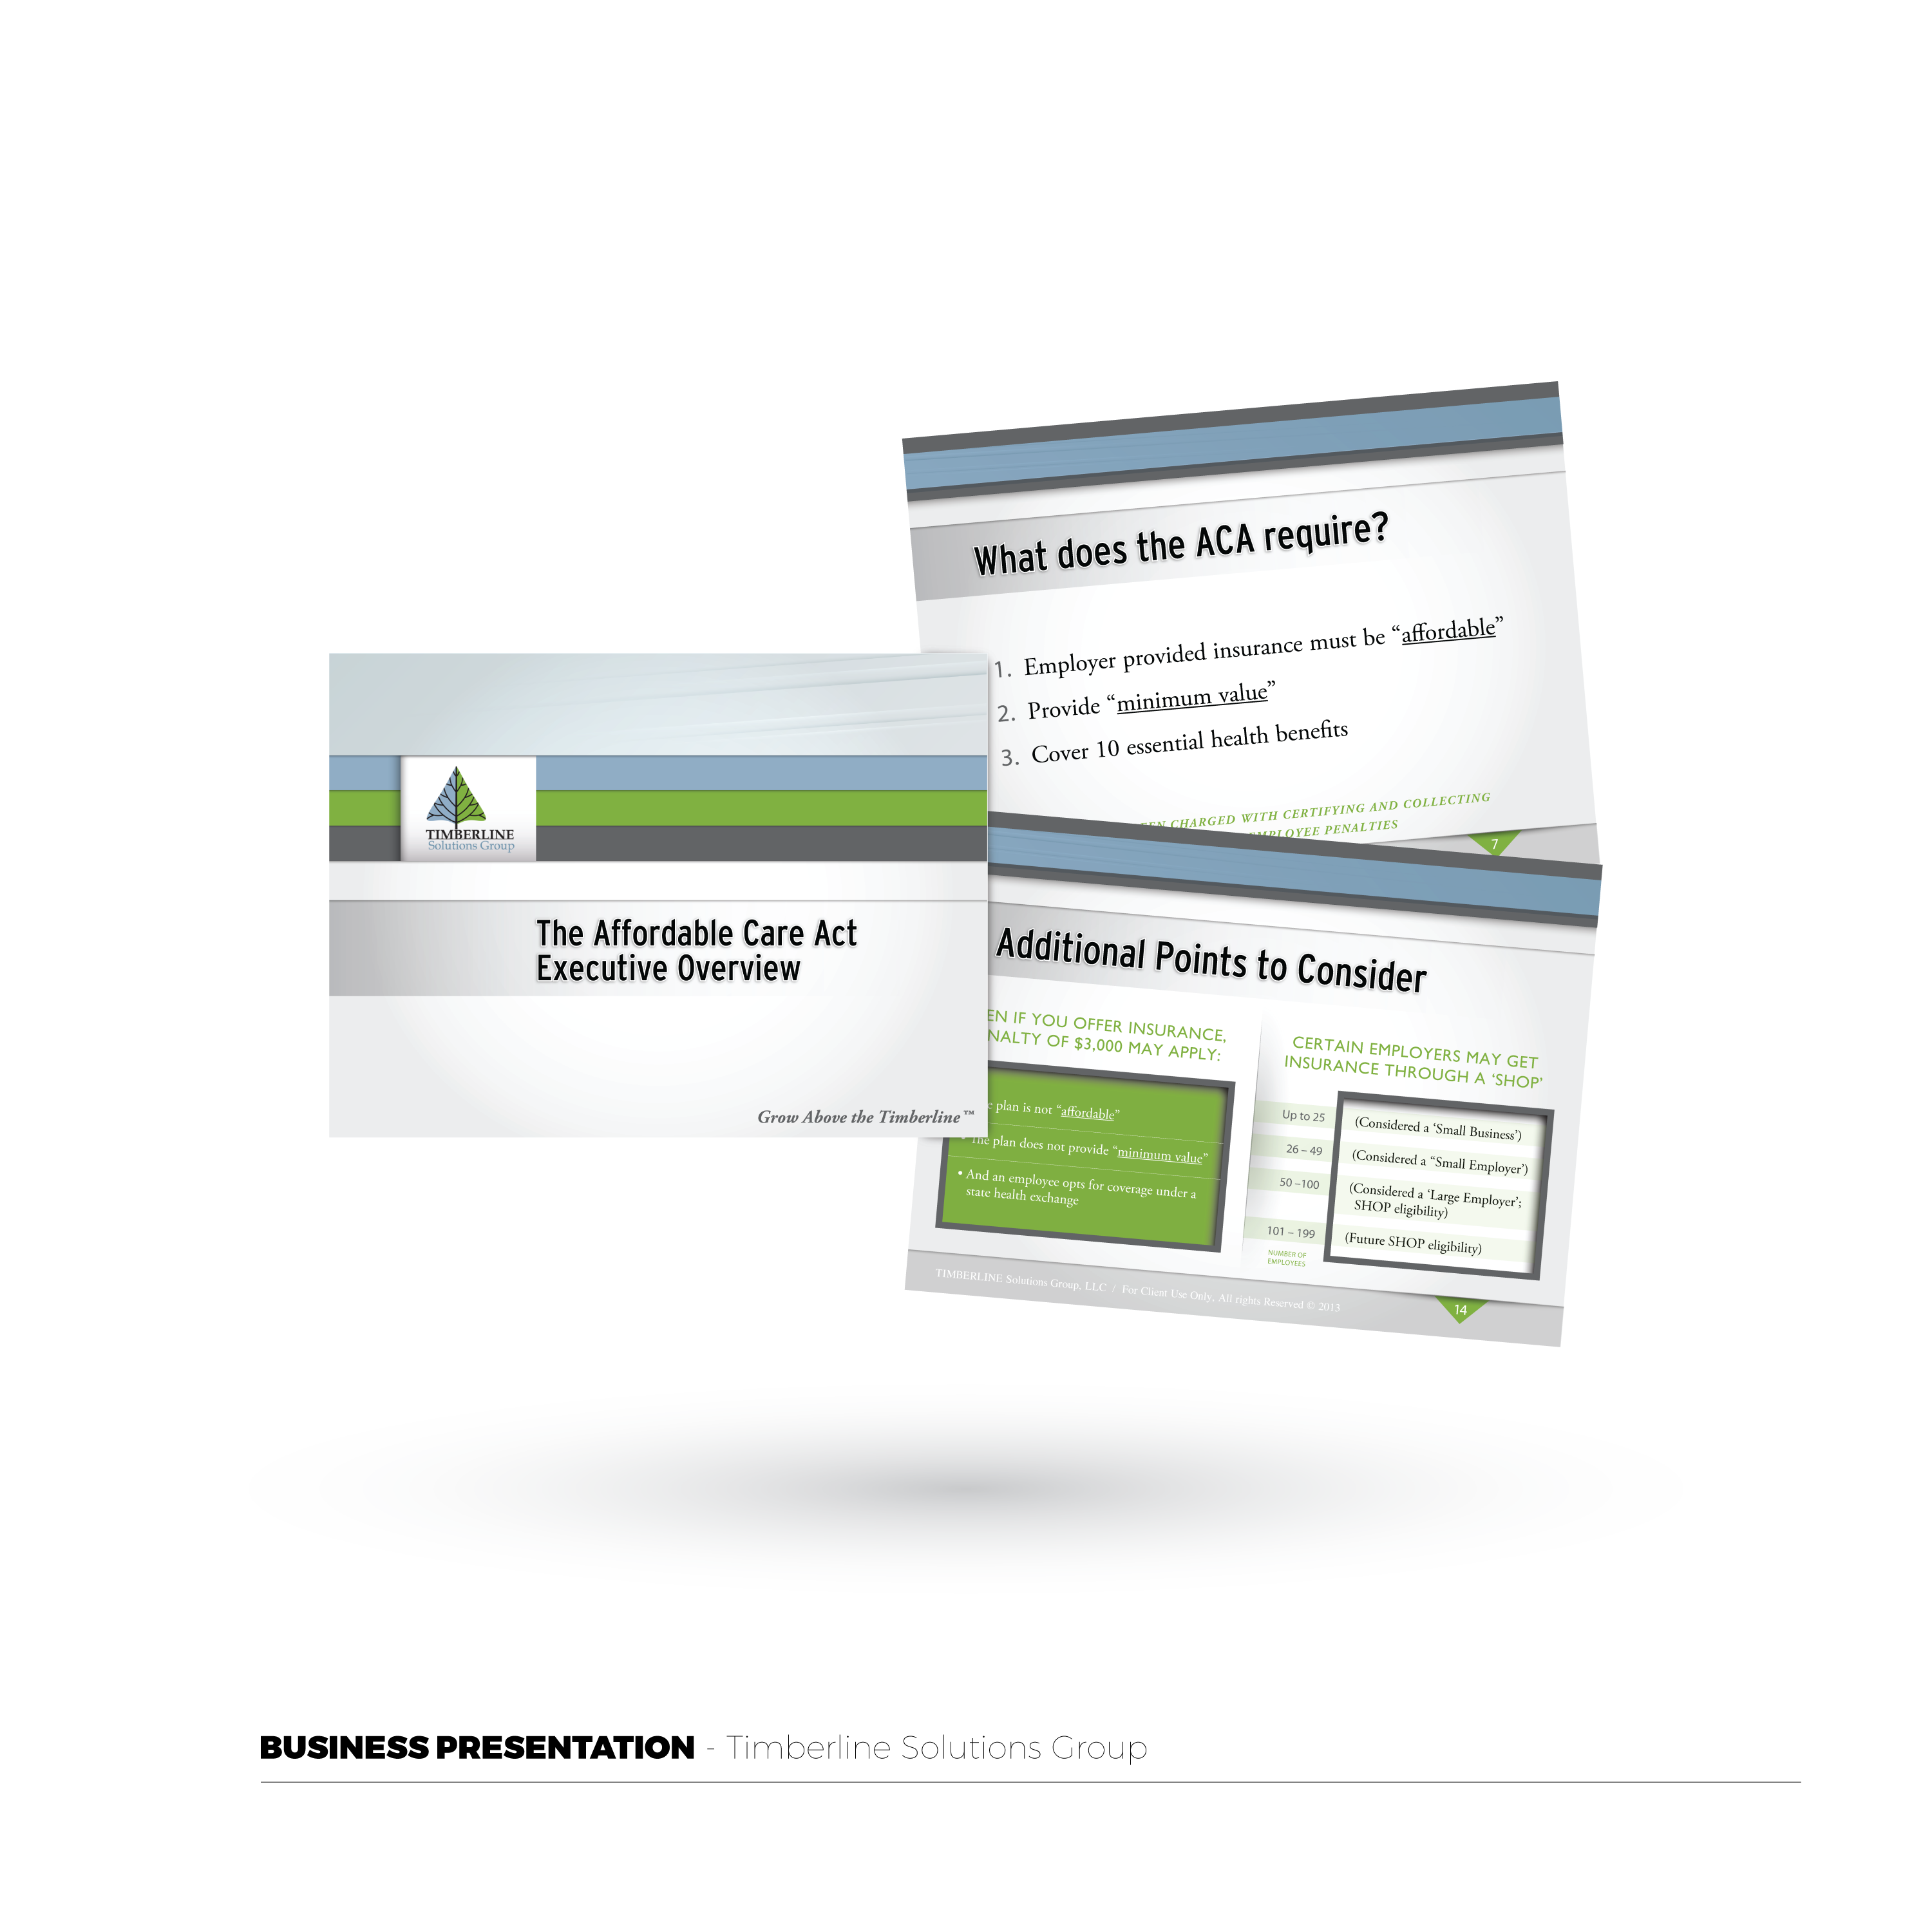 Timberline Solutions Group Presentat